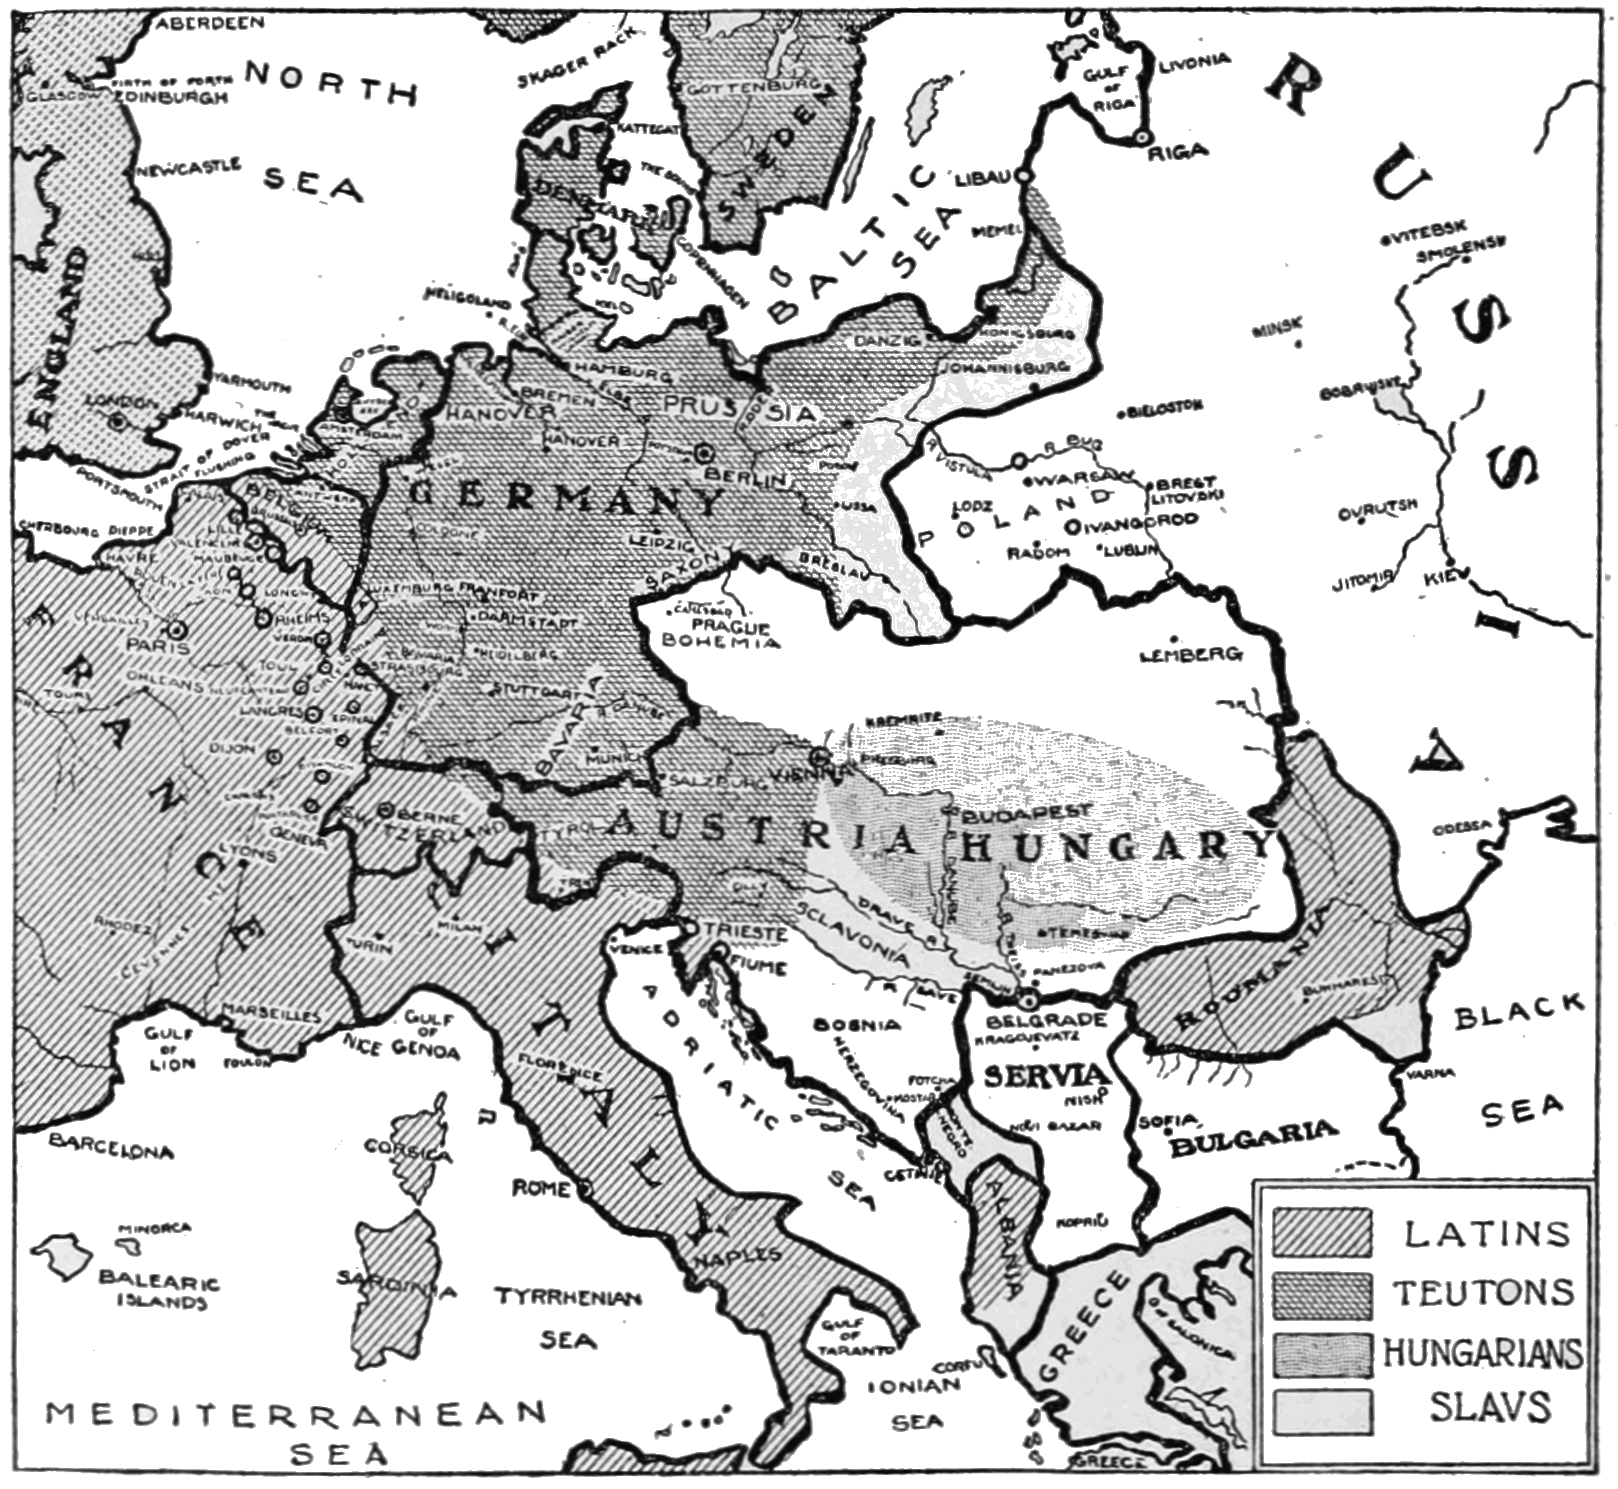 PSM V85 D314 Boundaries of central europe and the distribution of races.png